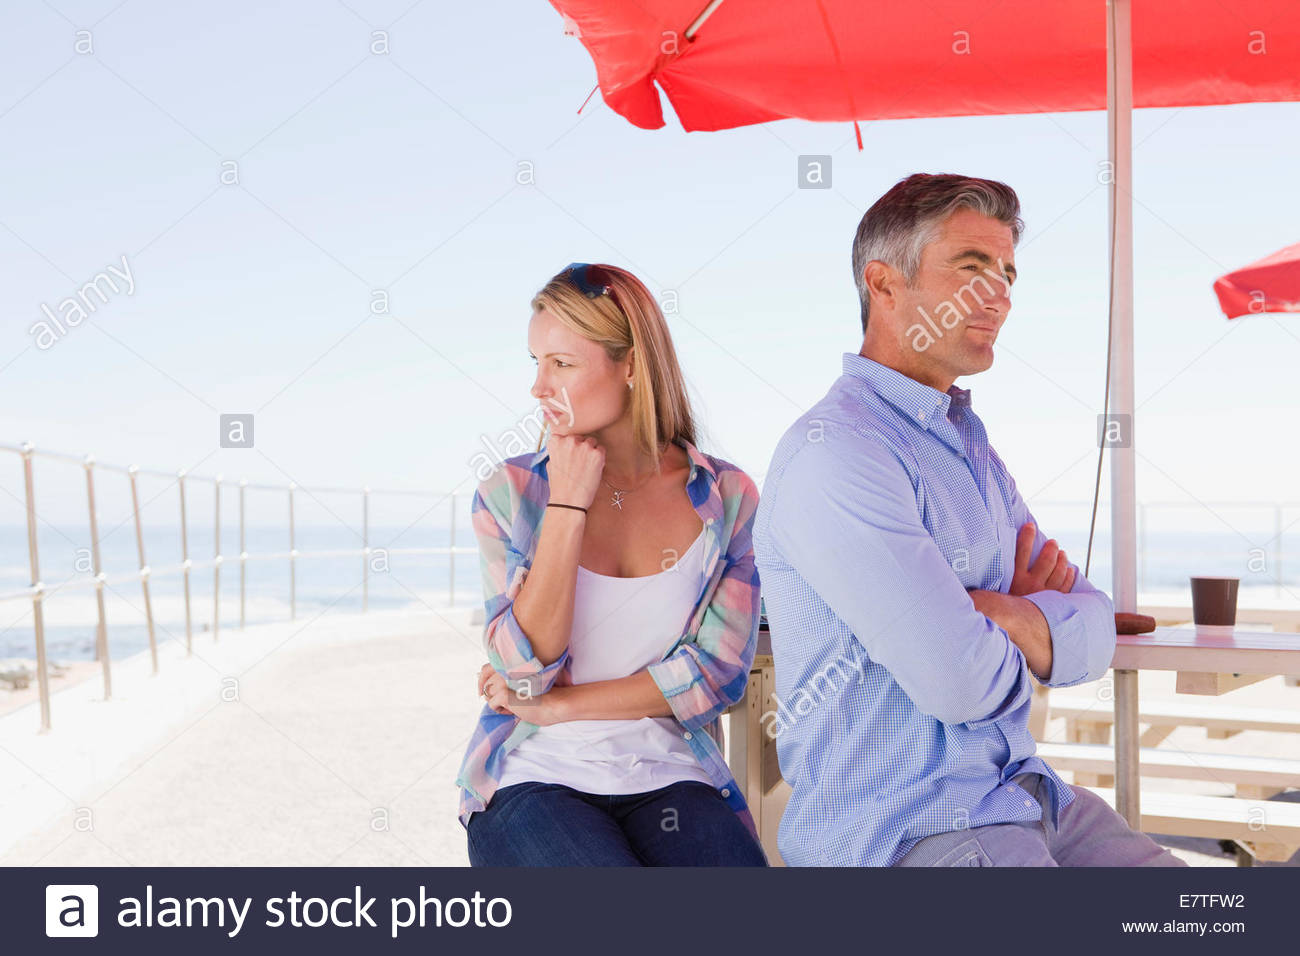 Couple arguing under umbrella at waterfront table - Stock Image